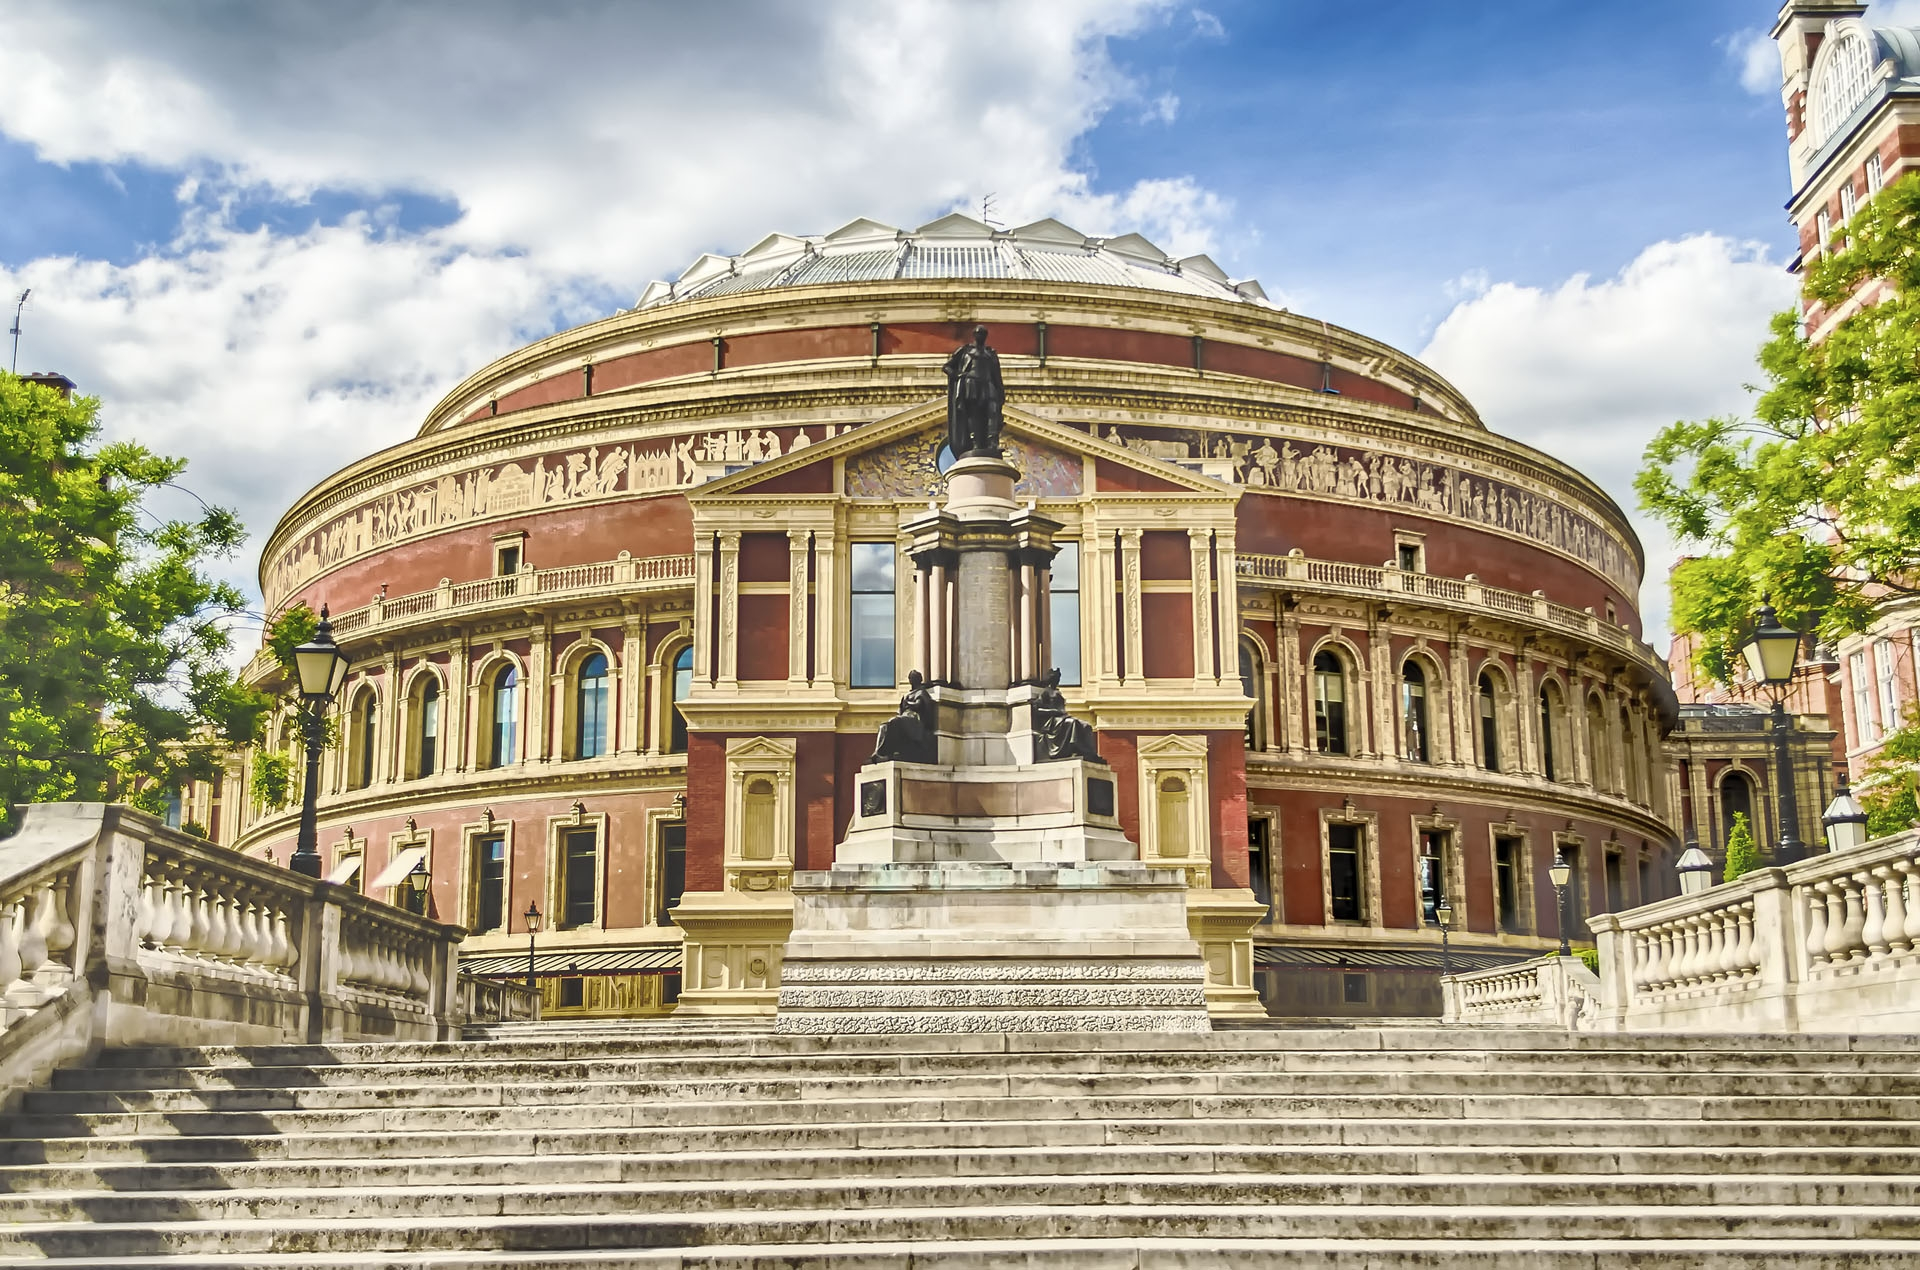 The Royal Albert Hall, London, UK